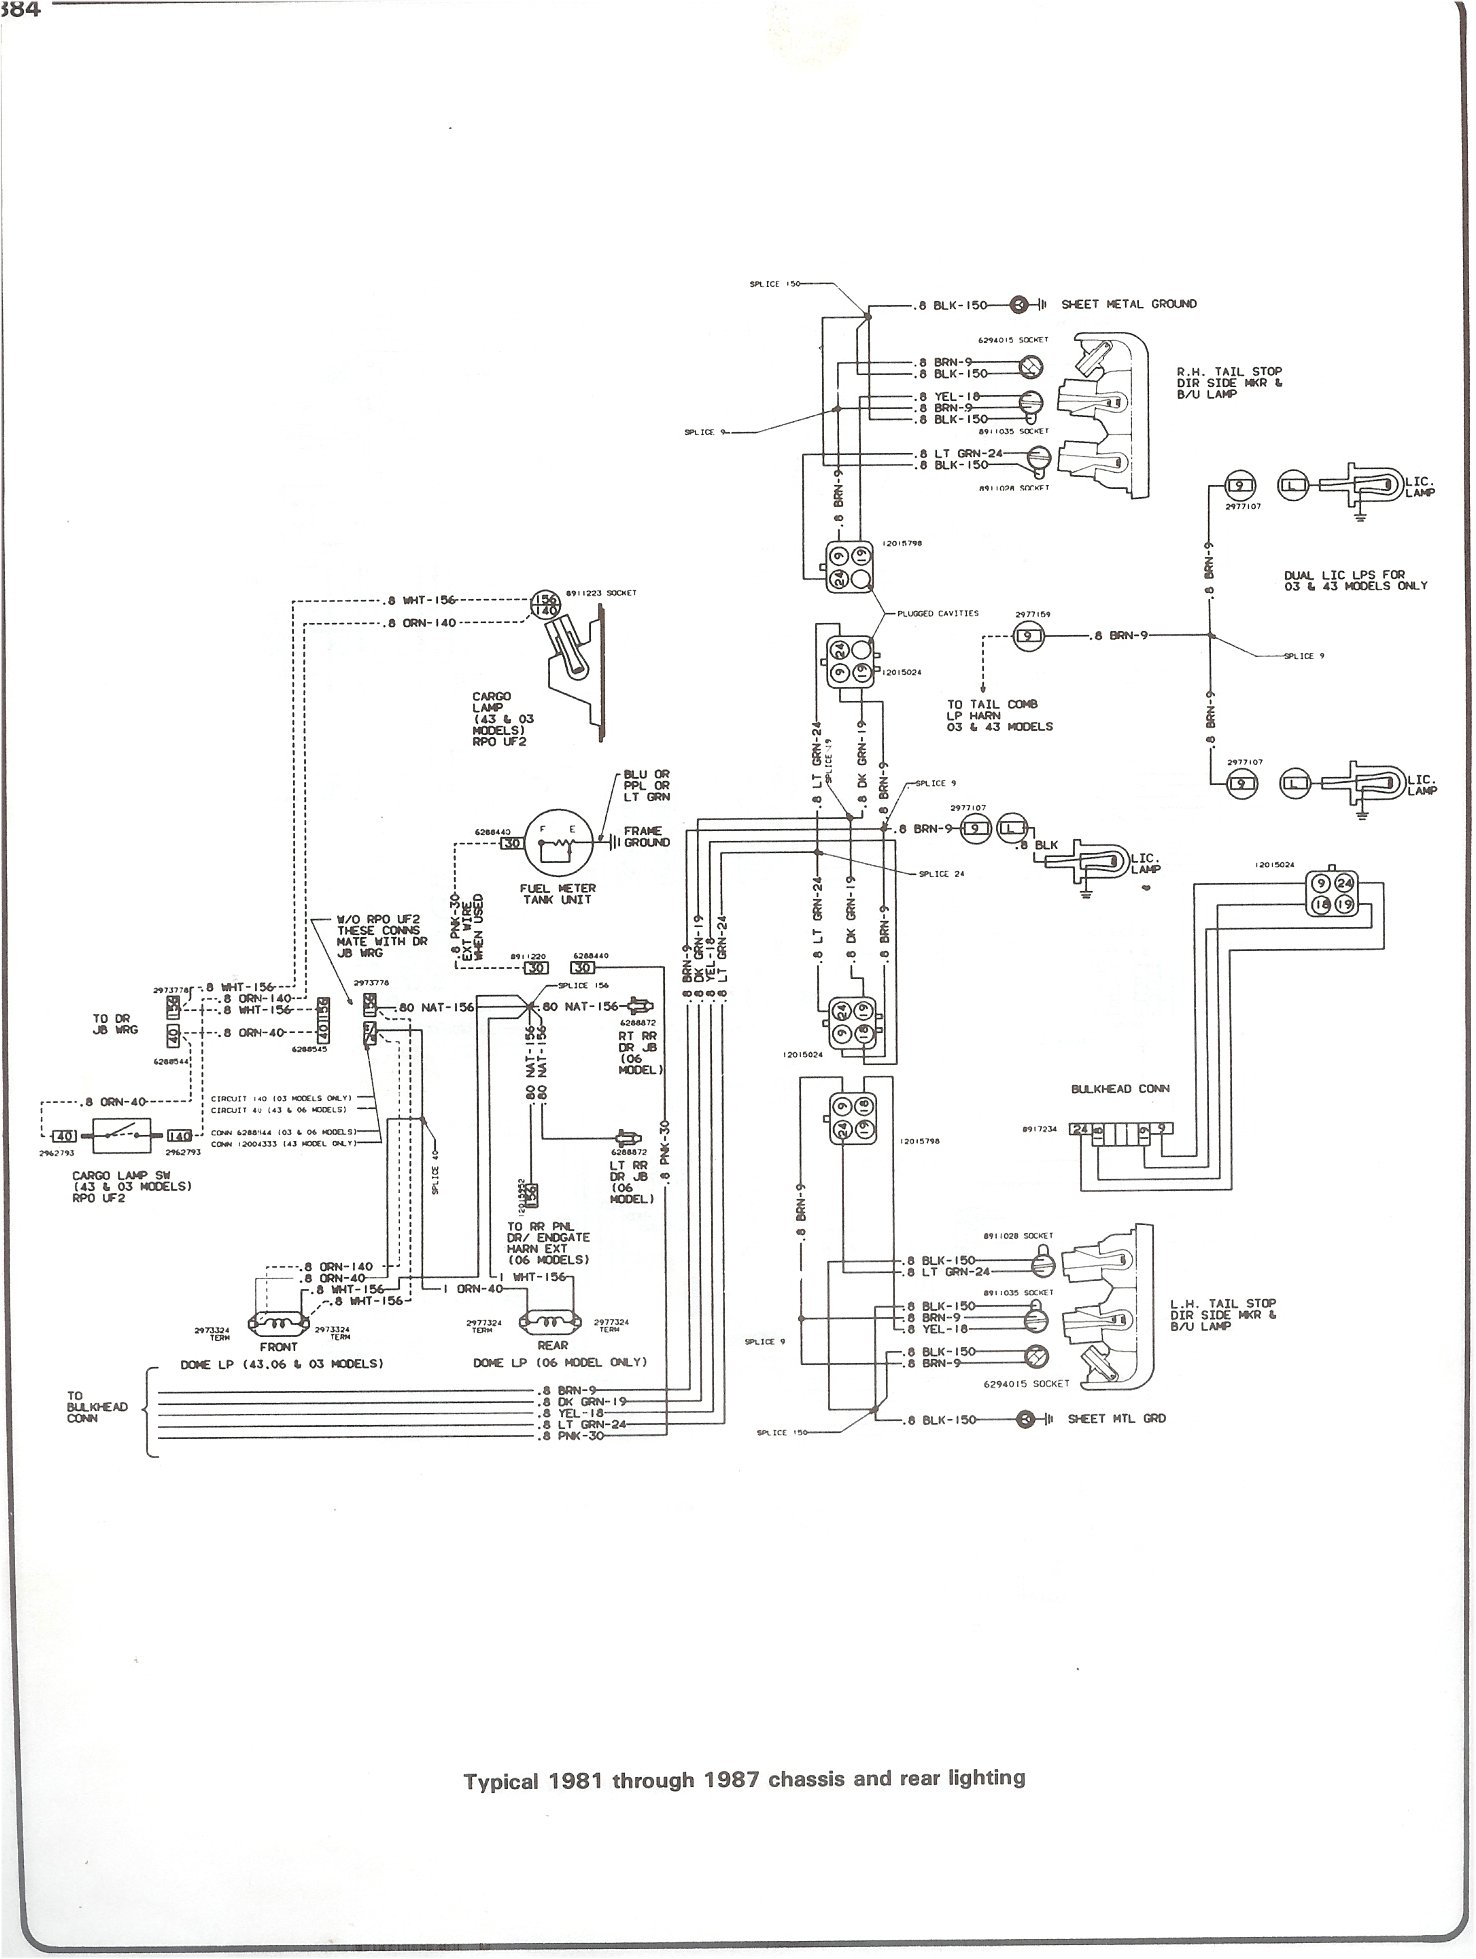 81 87_chass_rr_light complete 73 87 wiring diagrams 1982 chevy truck fuse box diagram at edmiracle.co